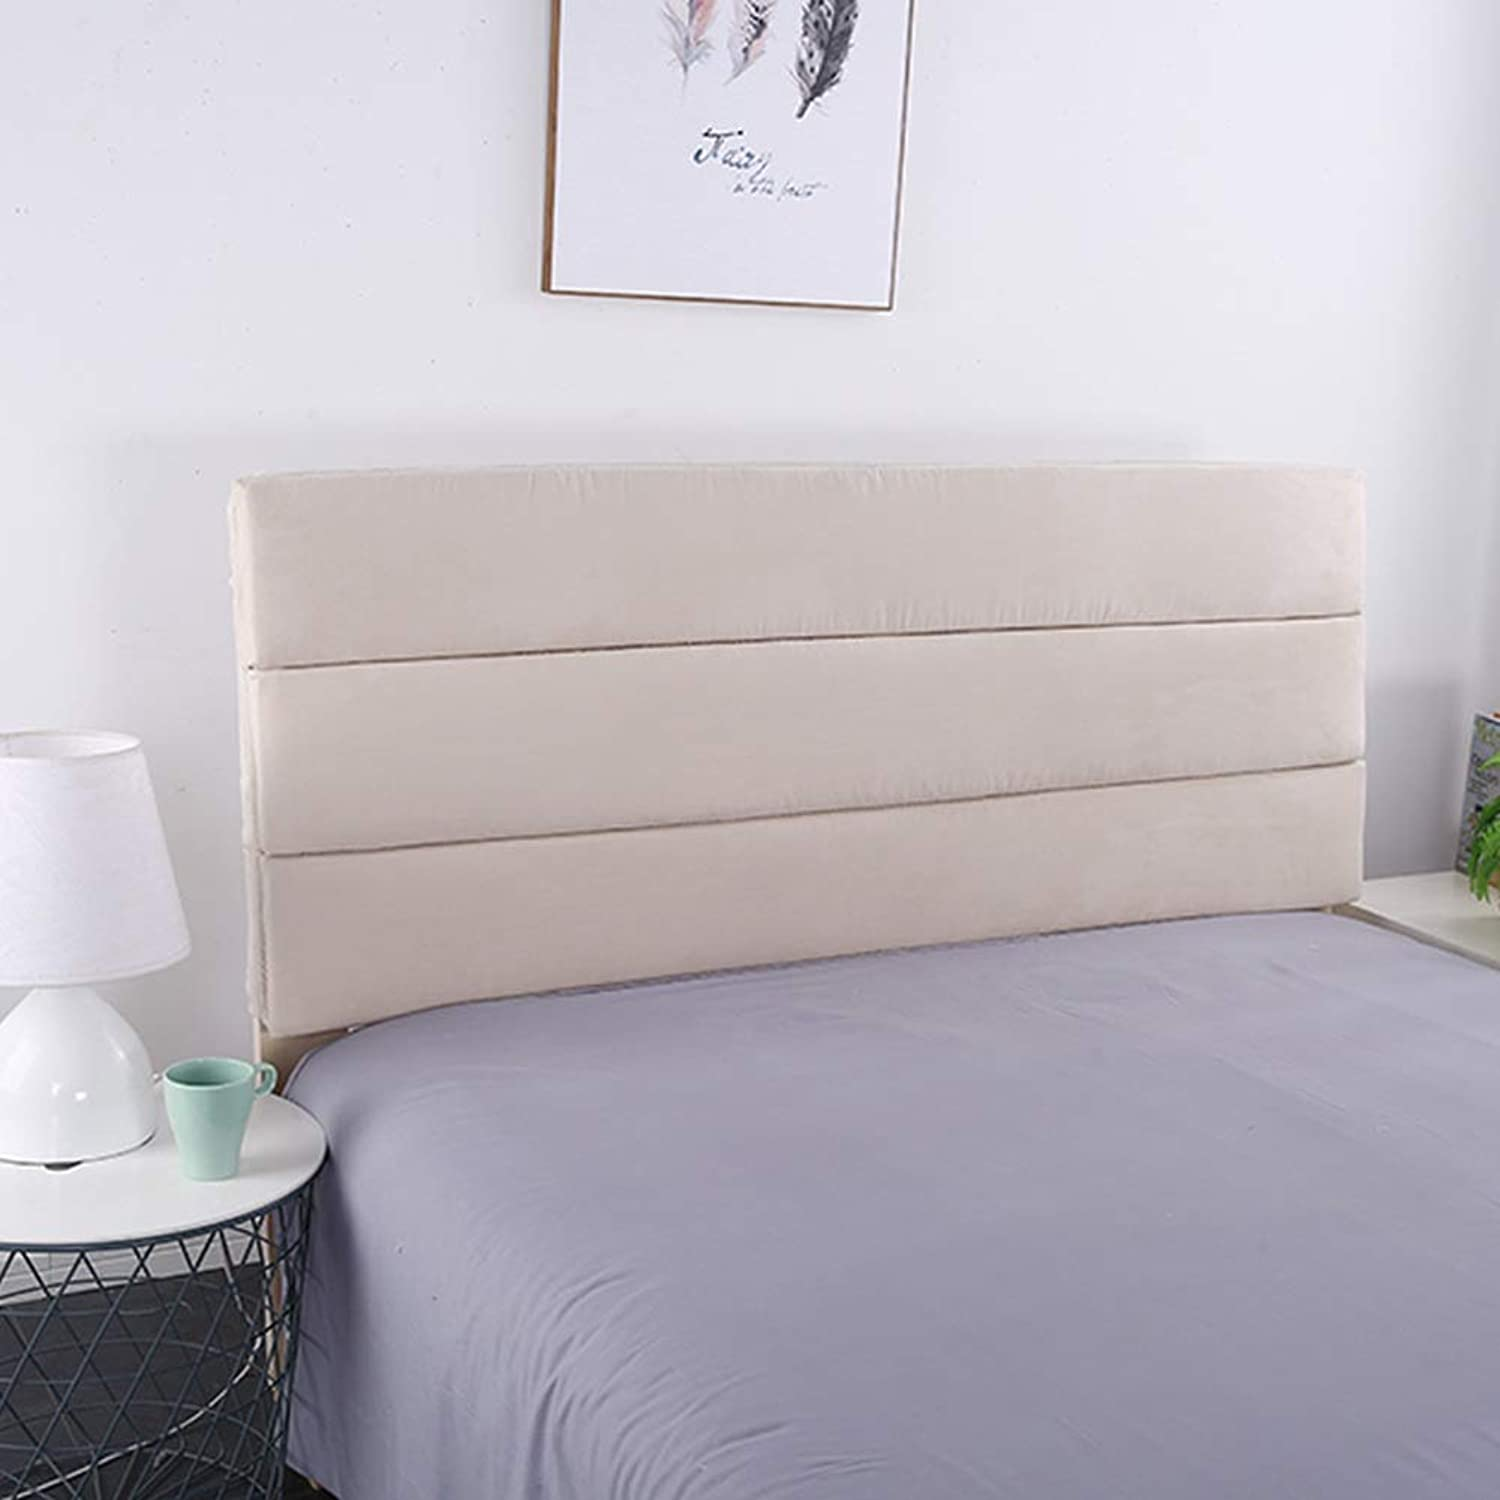 WENZHE Upholstered Fabric Headboard Bedside Cushion Pads Cover Bed Wedges Backrest Waist Pad Cloth Soft Case Skin-Friendly Soft Home Bedroom Backrest, Have A Headboard, 9 colors